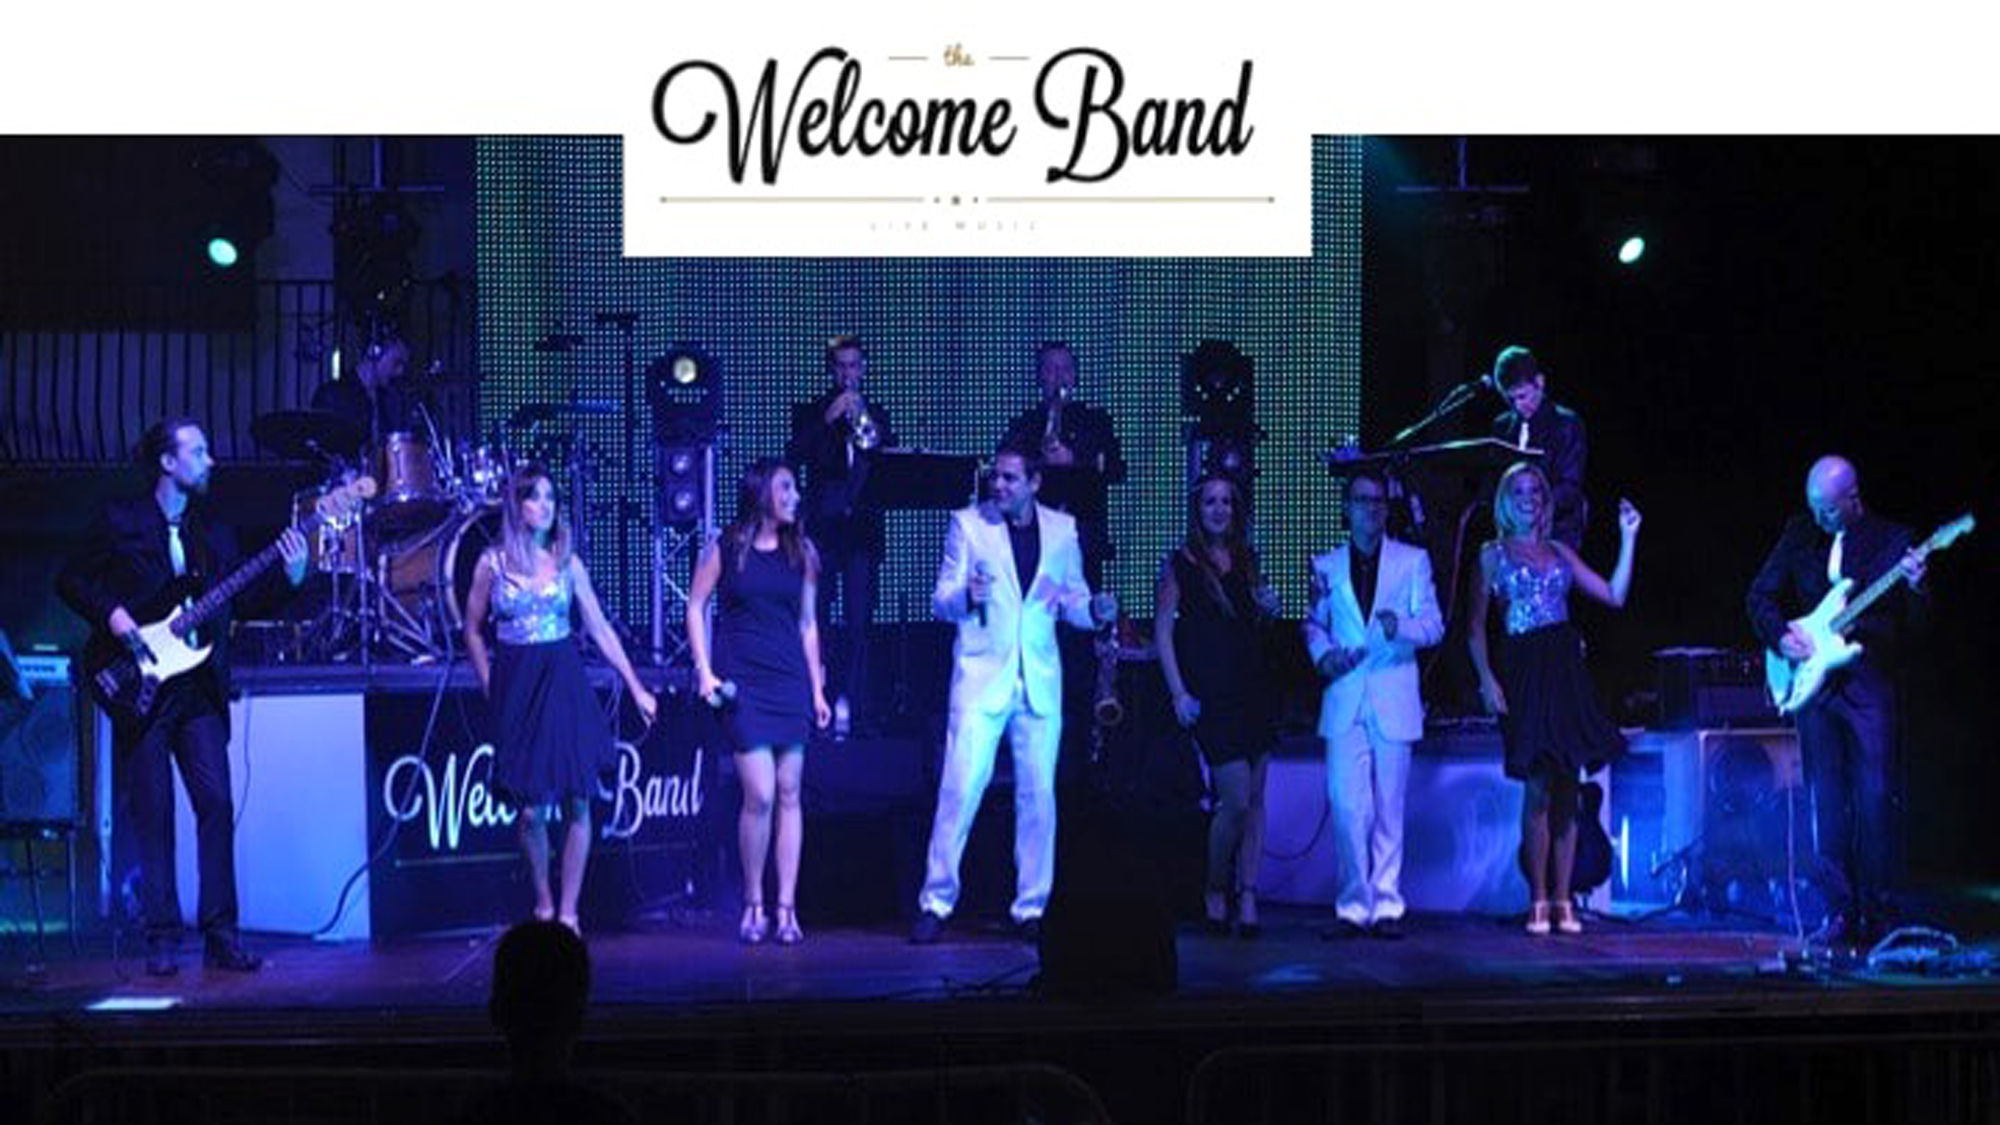 The Welcome Band